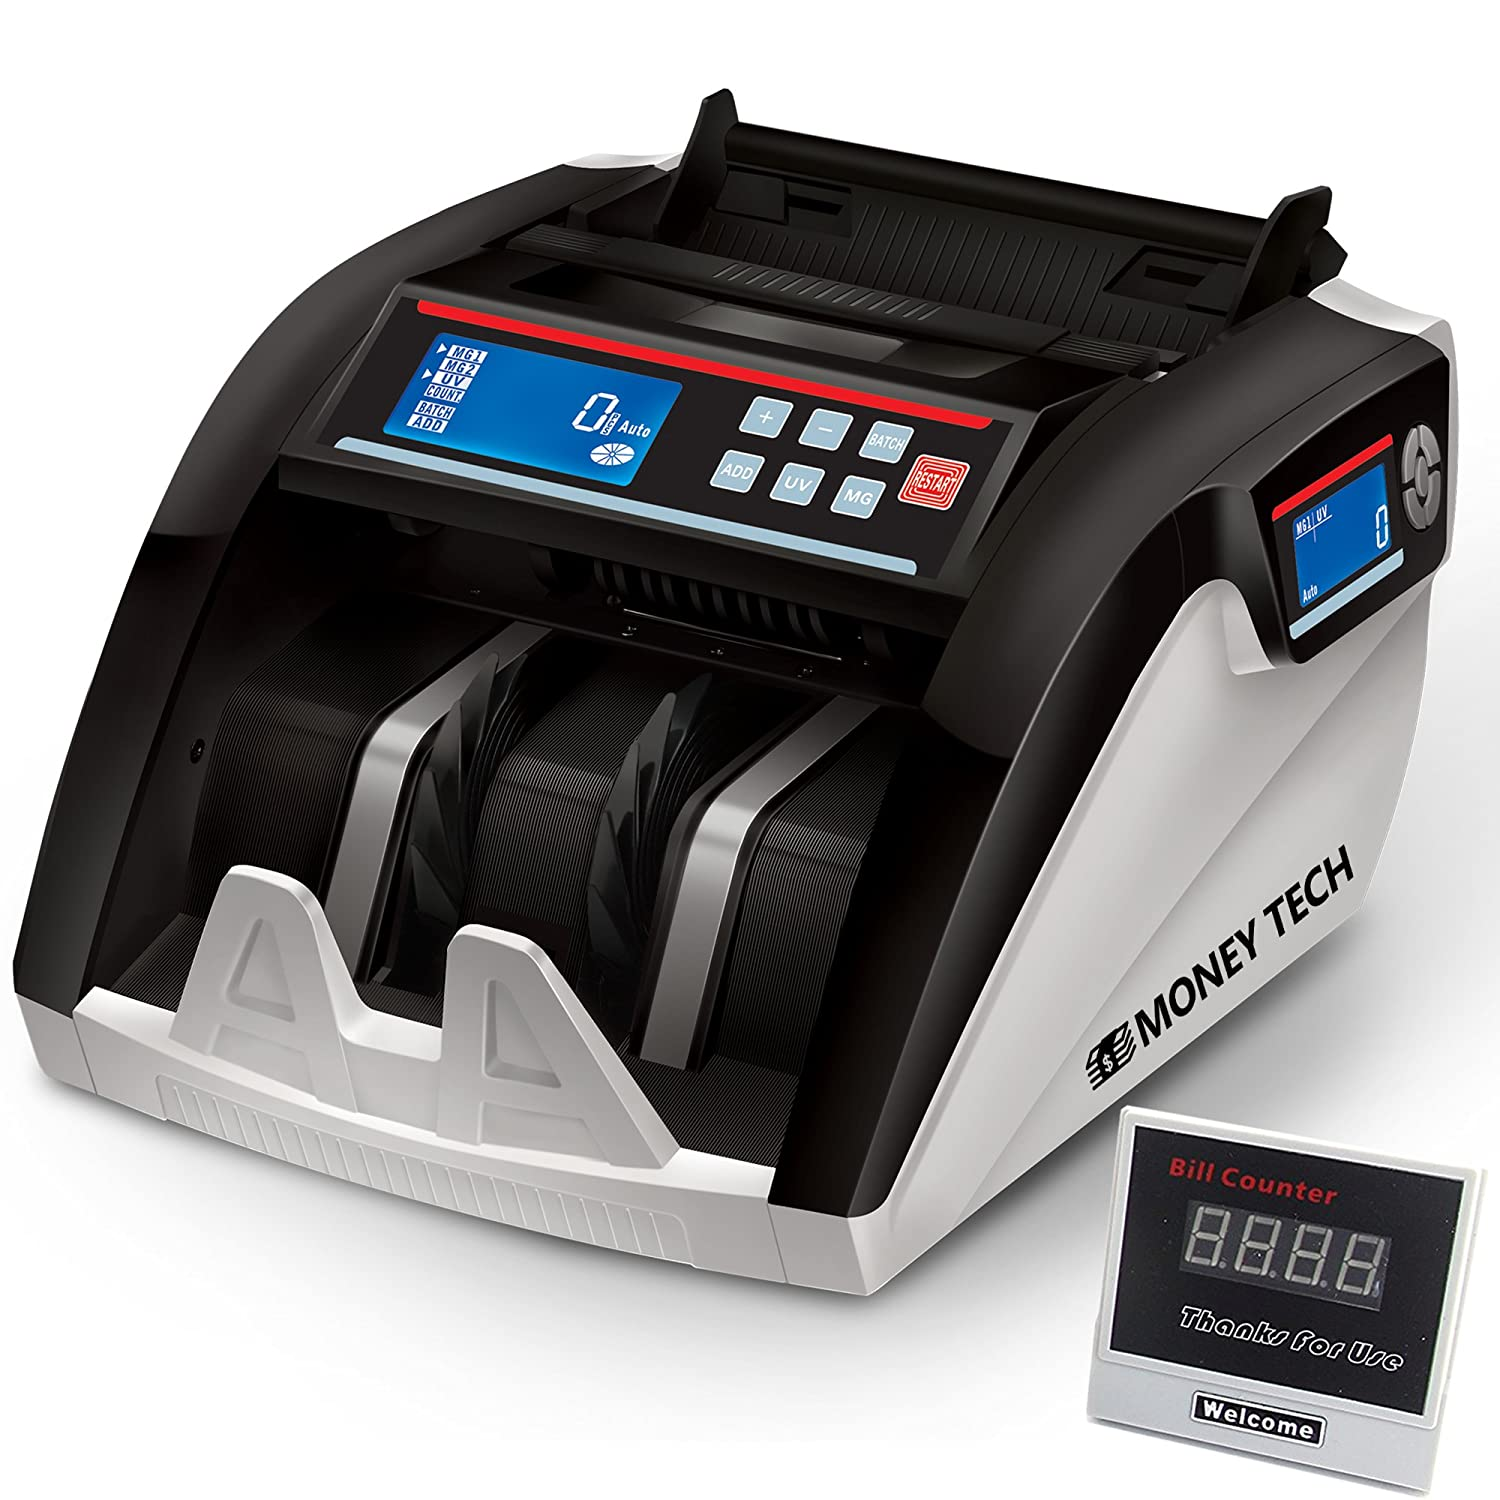 Money Tech Polymer & Paper Multi-Currency Bill Cash Counter. Canadian Plastic & USD Banknote Counting Machine with Counterfeit Detection and LCD Screens. Contemporary Tech